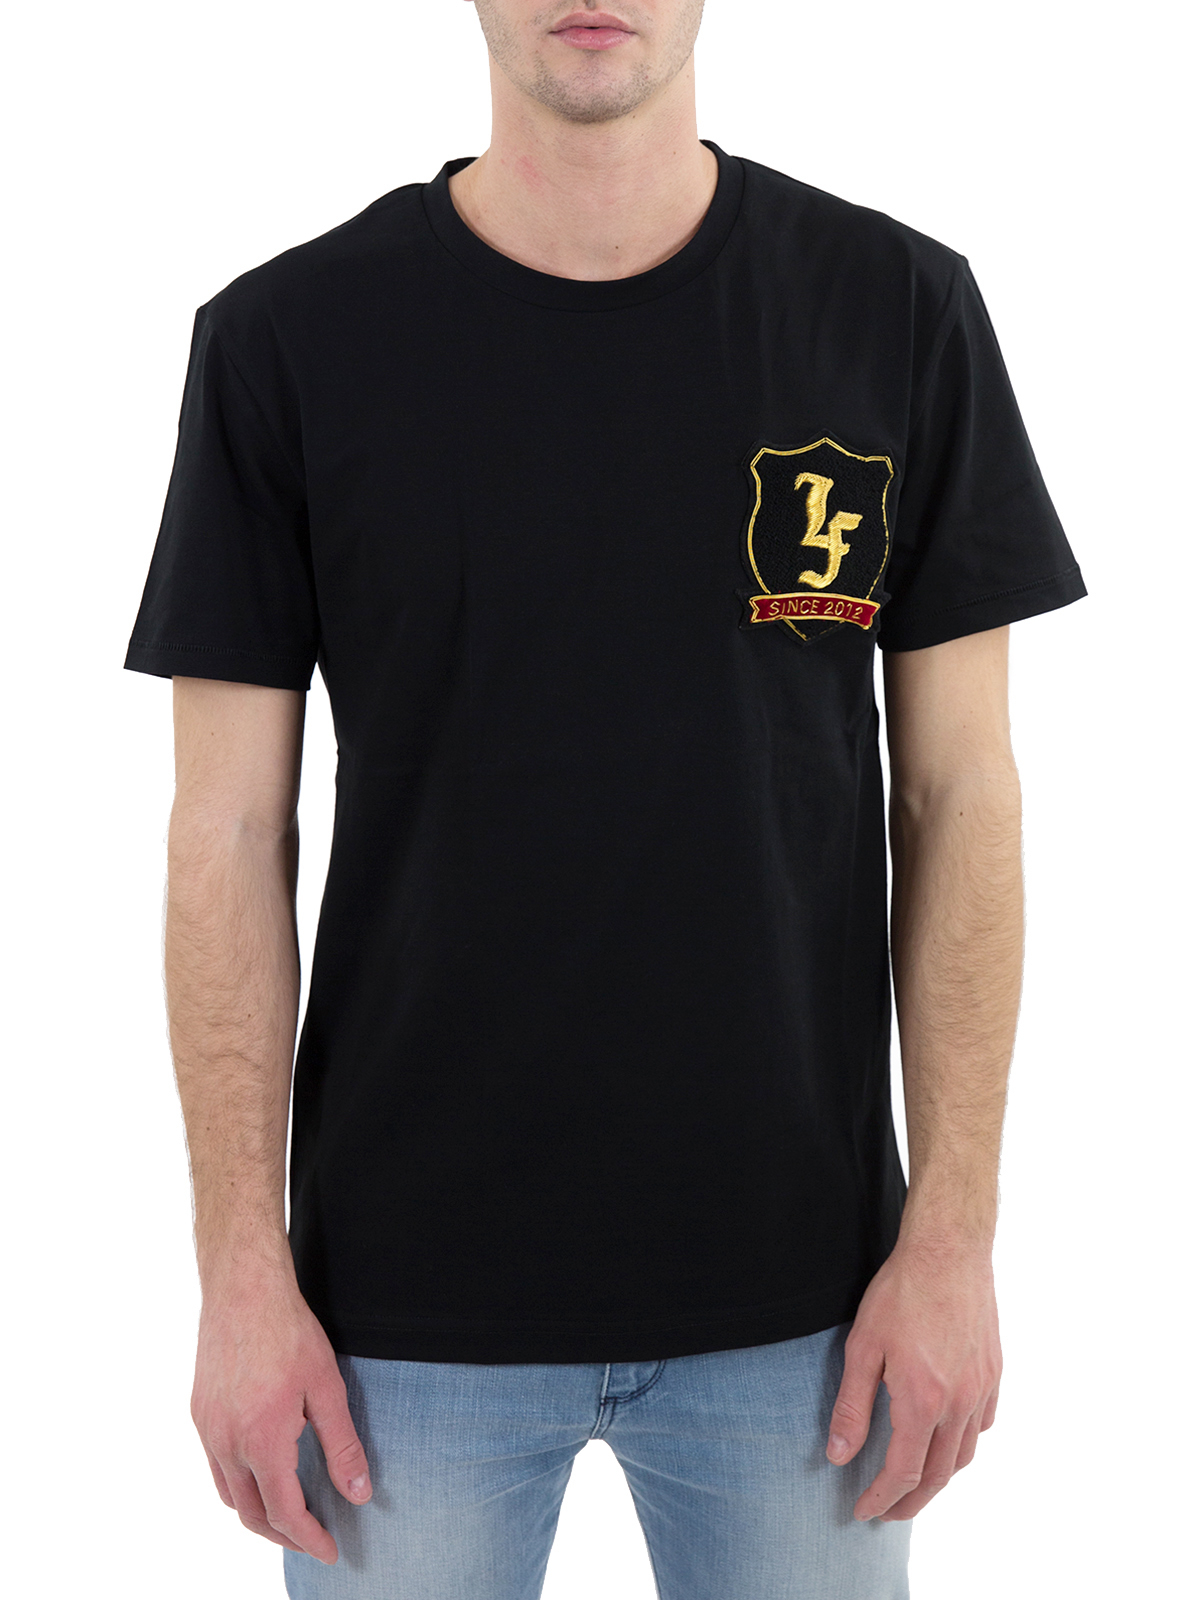 Lords & Fools T-shirt S19 T-SHIRT LF